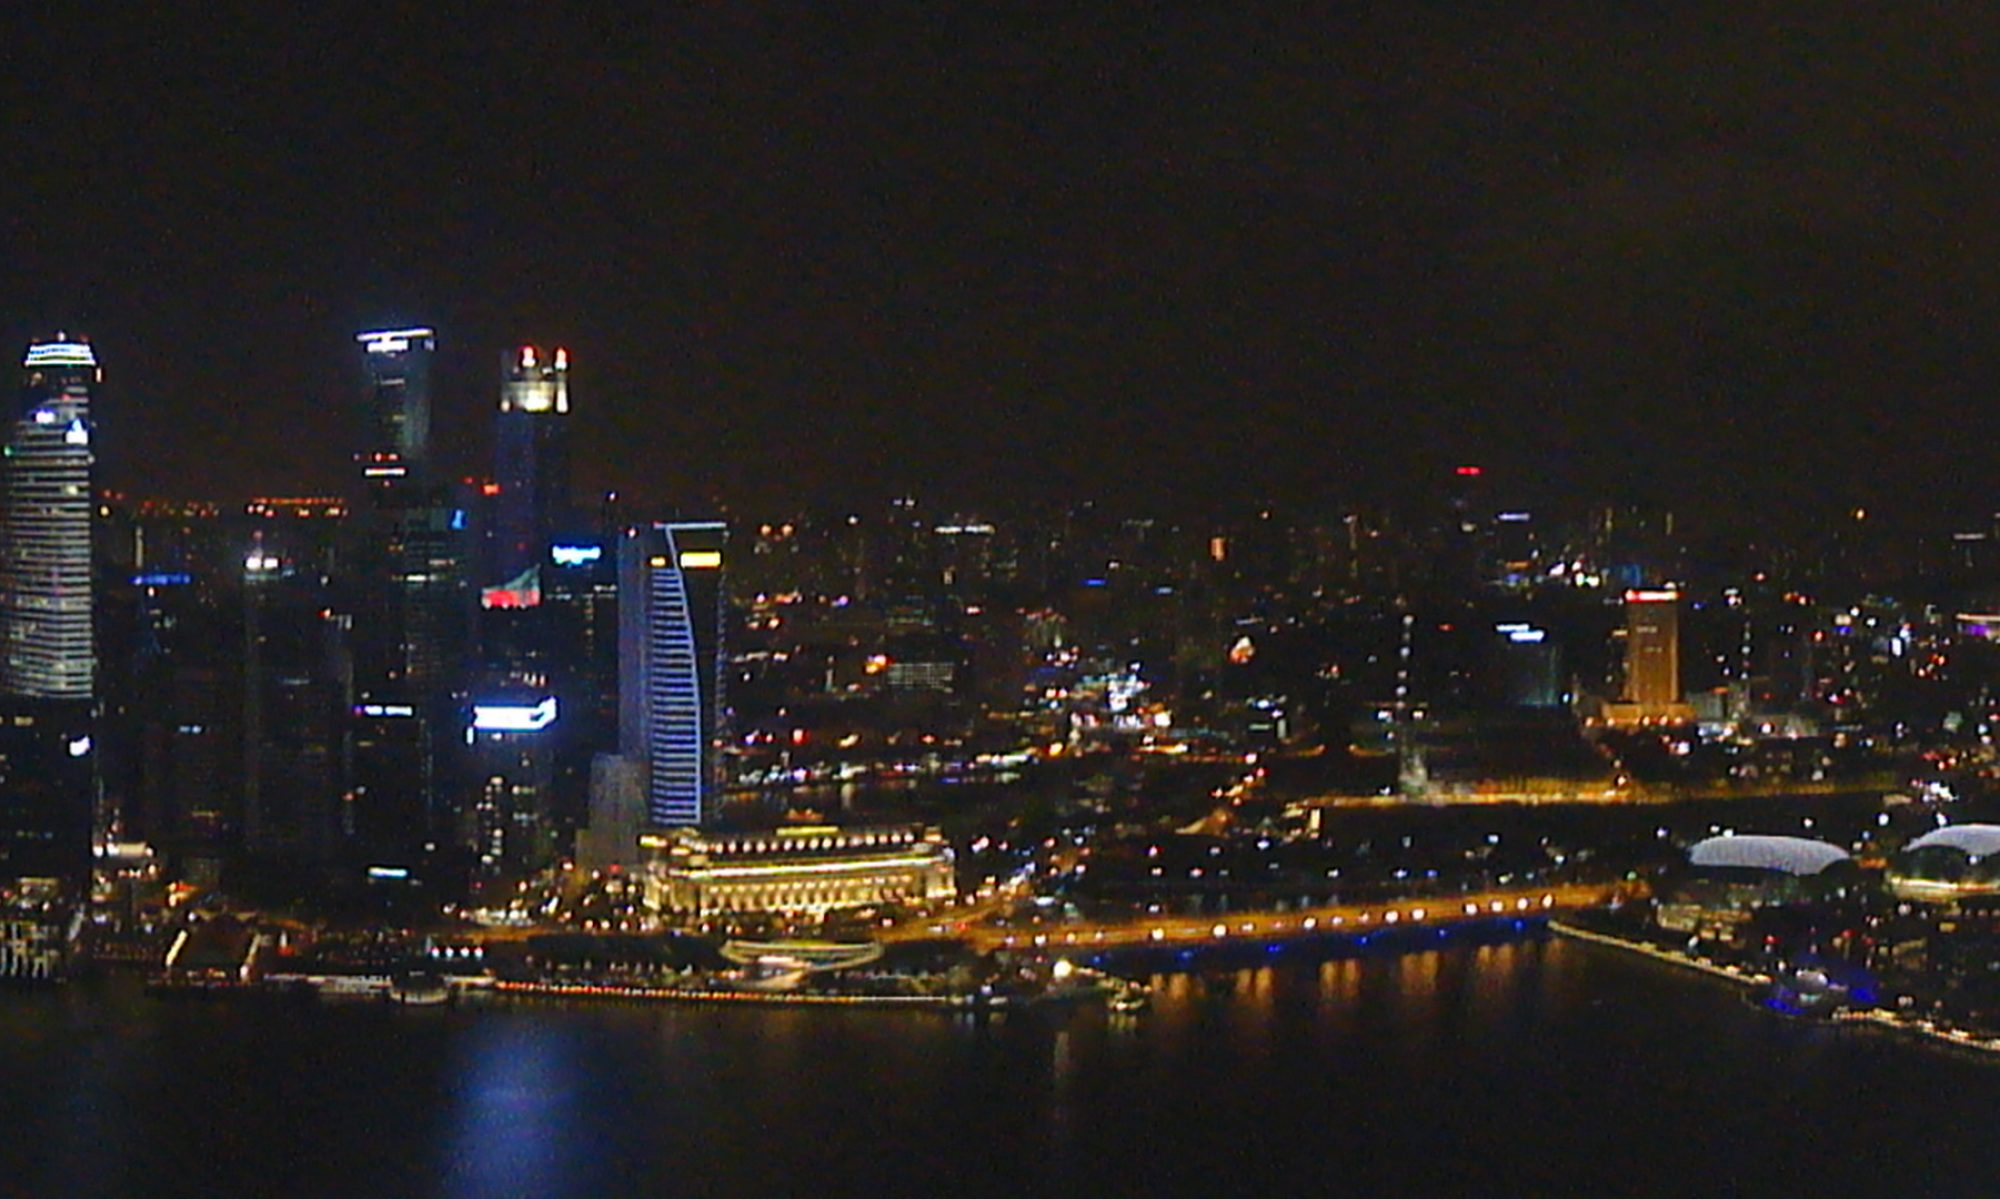 Singapore Night Shot